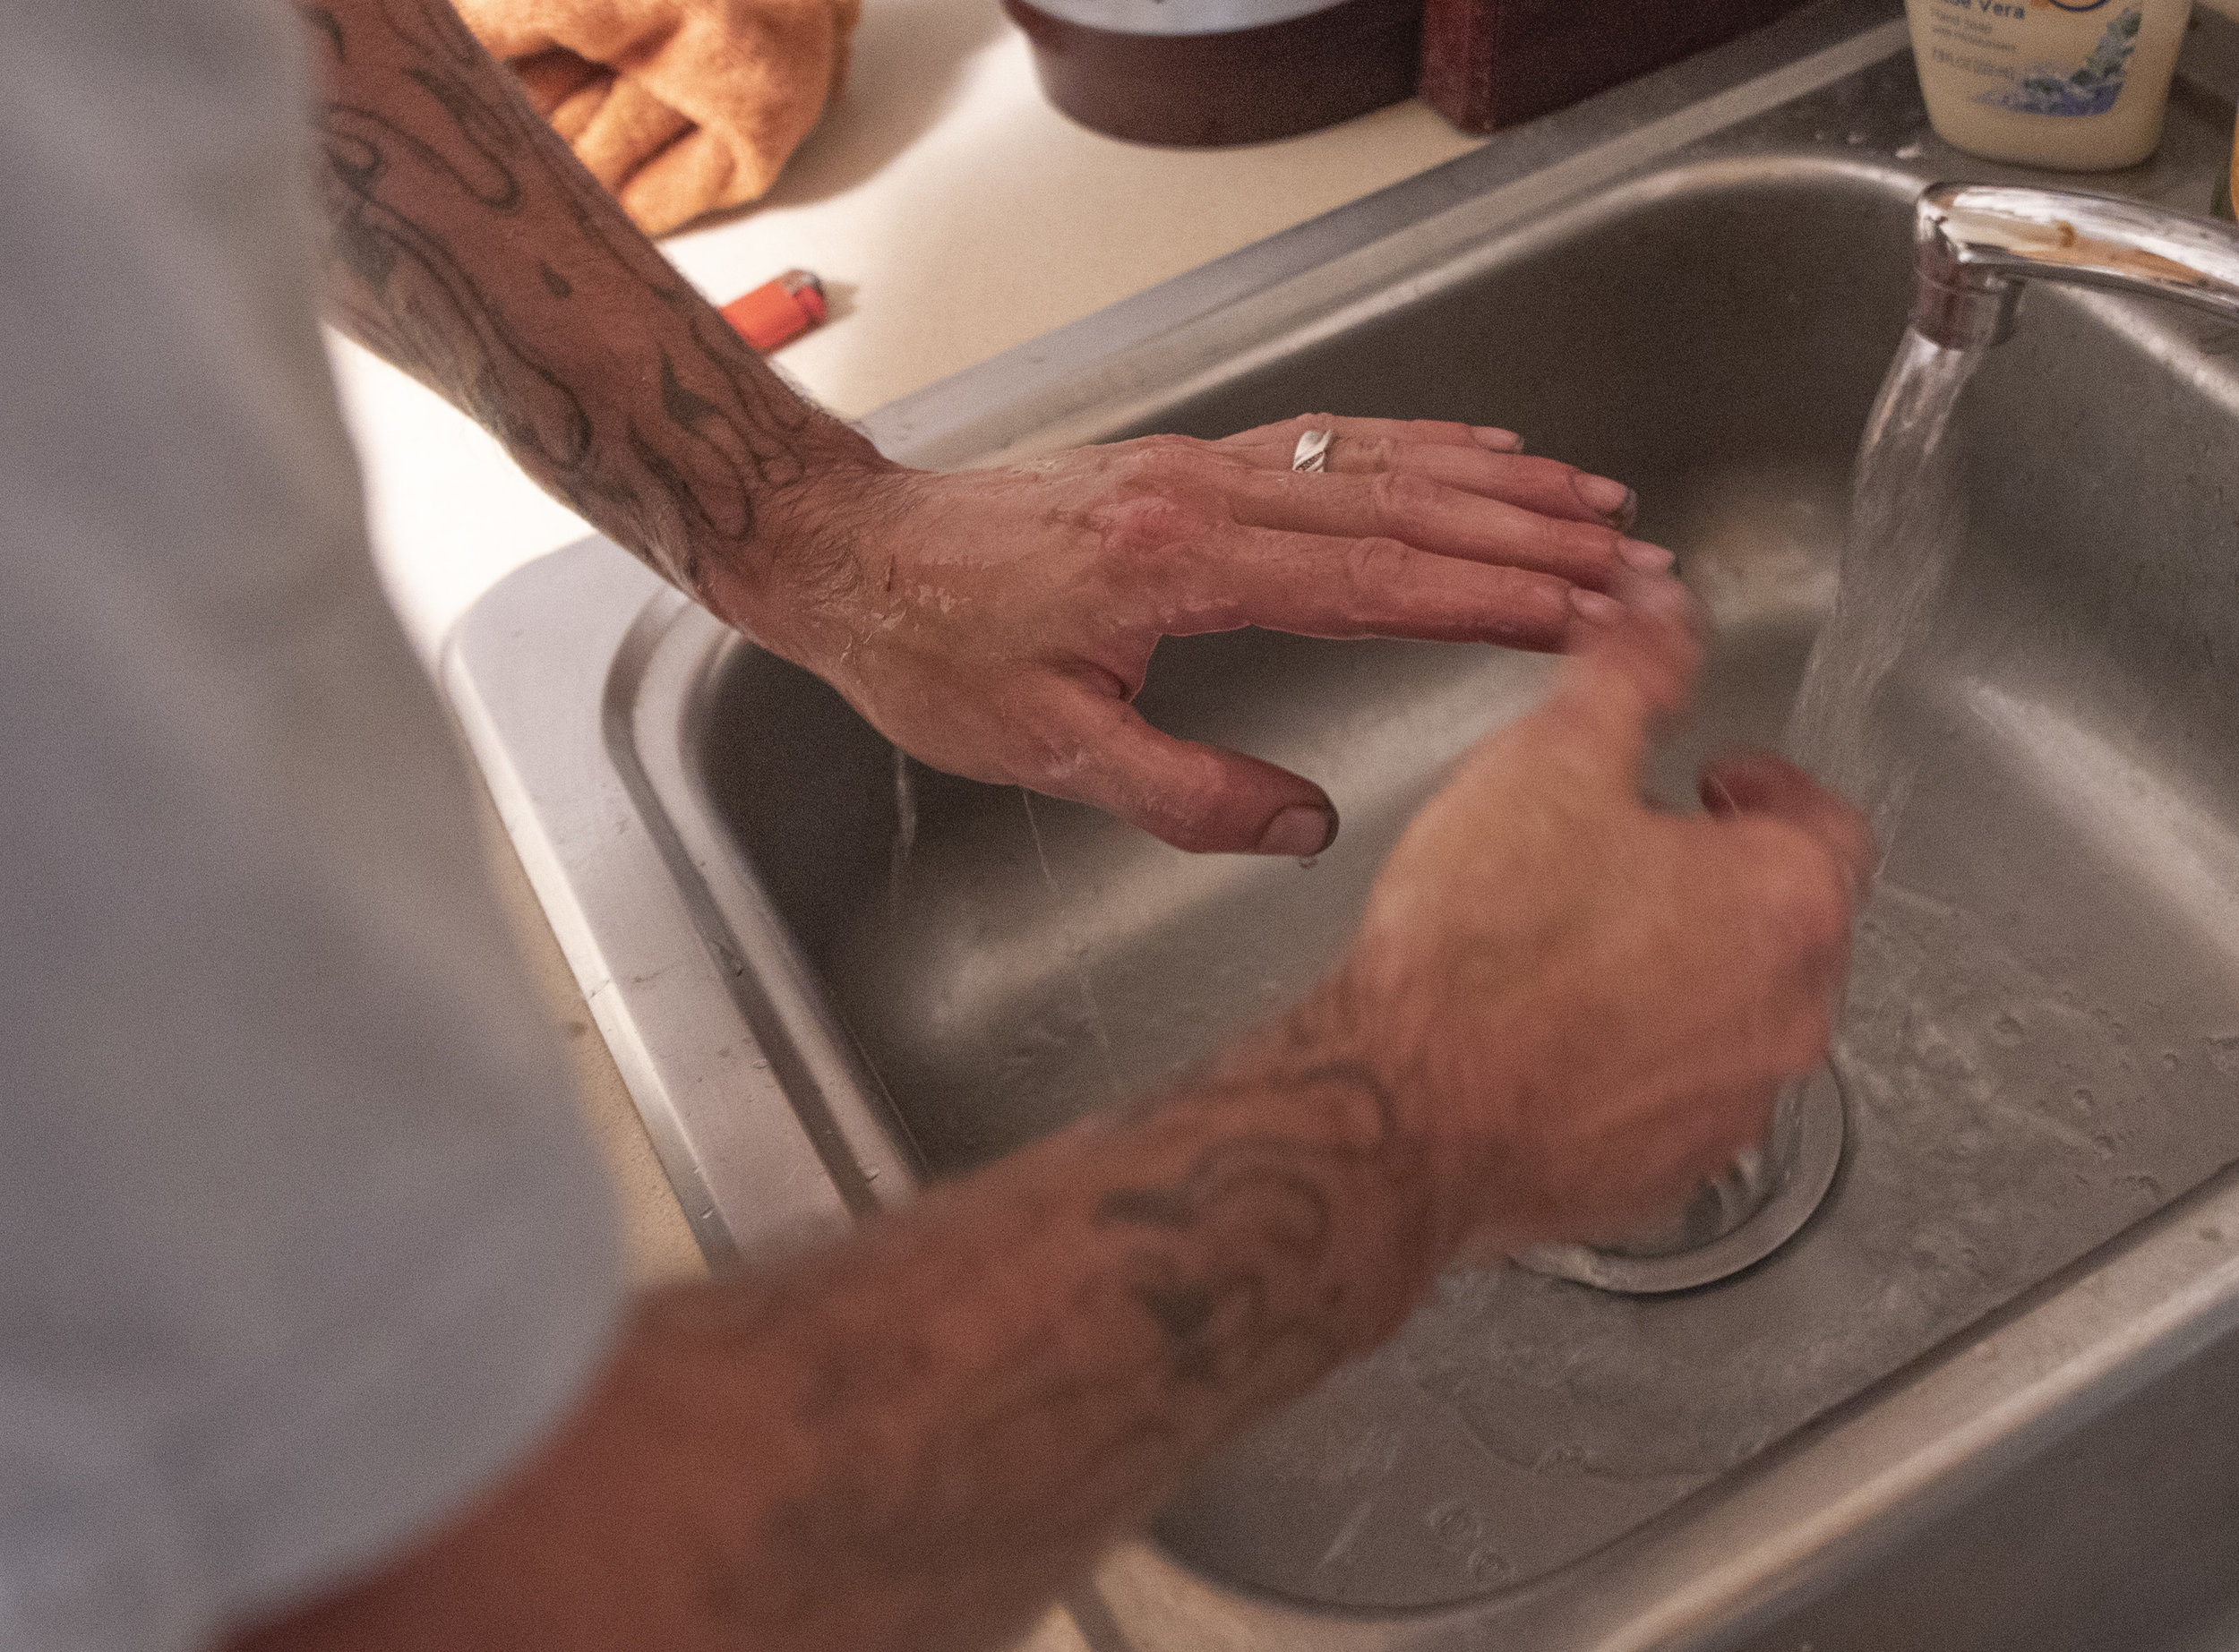 Calvin washes the grime from his hands in the sink after repairing motorized vehicles all day.